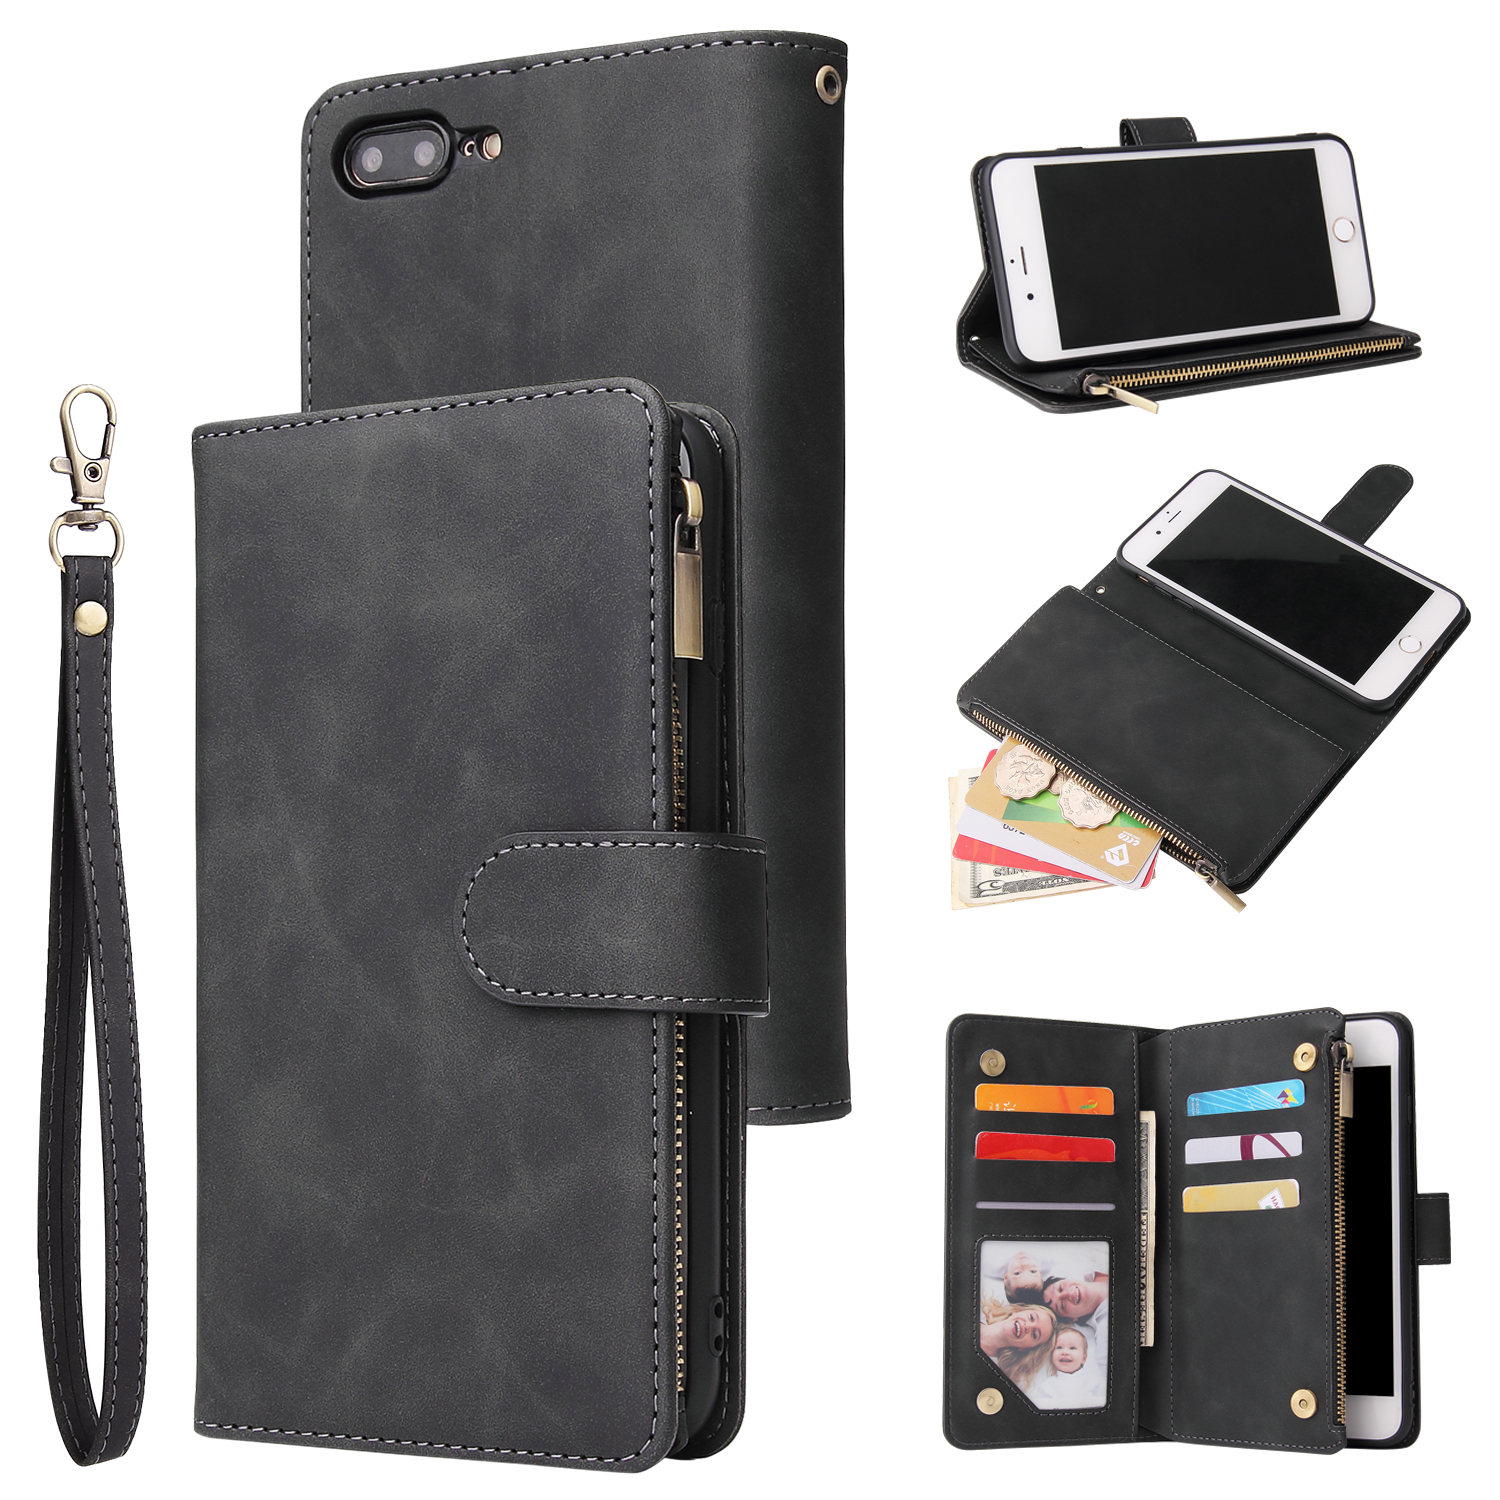 For iPhone 6 / 6S iPhone 6 plus / 6S plus iPhone 7 / 8 iPhone 7 plus / 8 plus Smart Phone Cover Coin Pocket with Cards Bracket Zipper Phone PU Leather Case Phone Cover  iPhone 7 plus / 8 plus